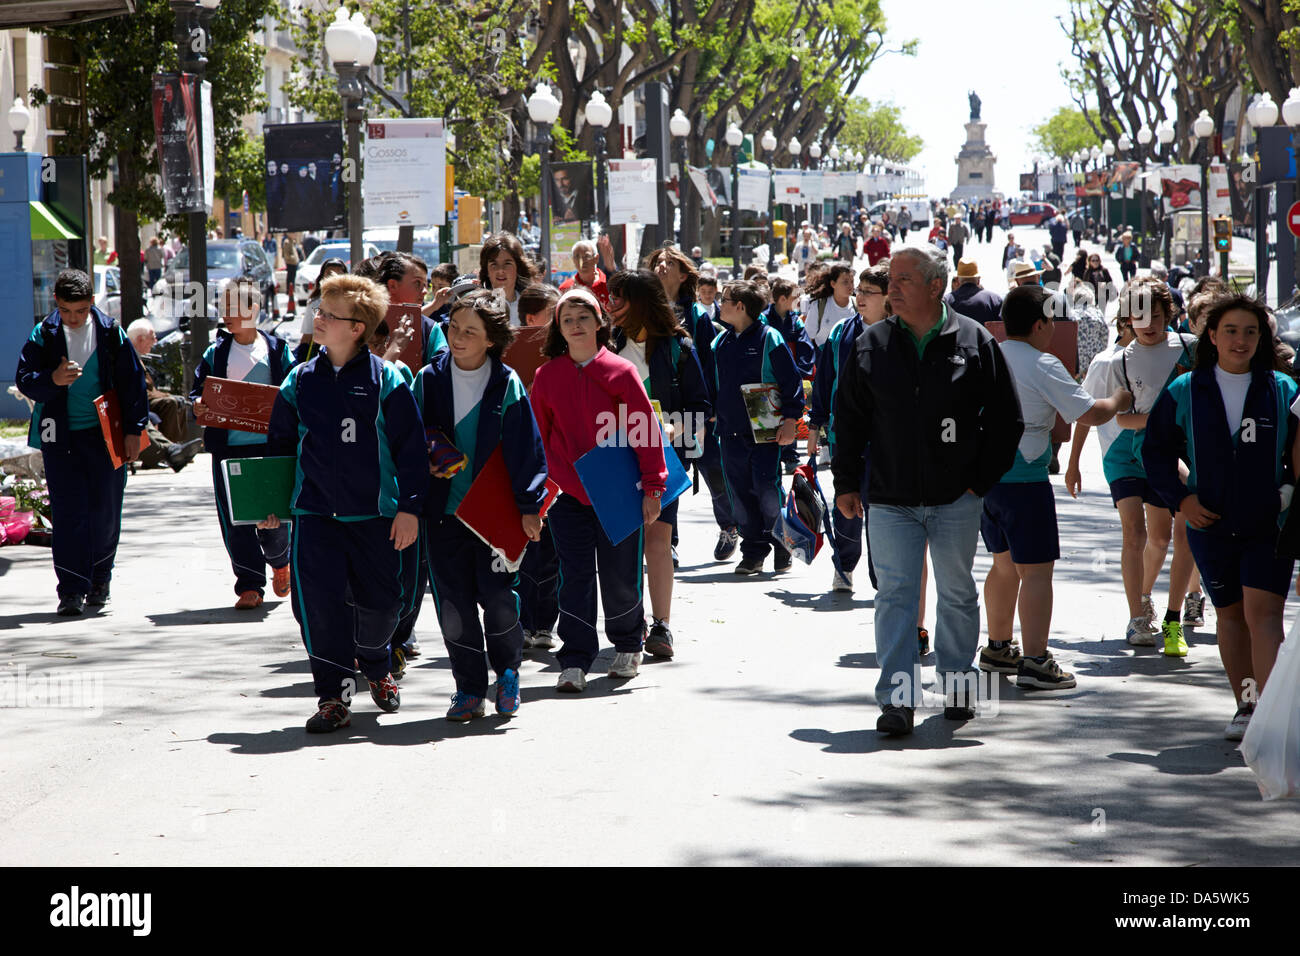 schoolchildren on school trip walk along rambla nova avenue in central tarragona catalonia spain Stock Photo